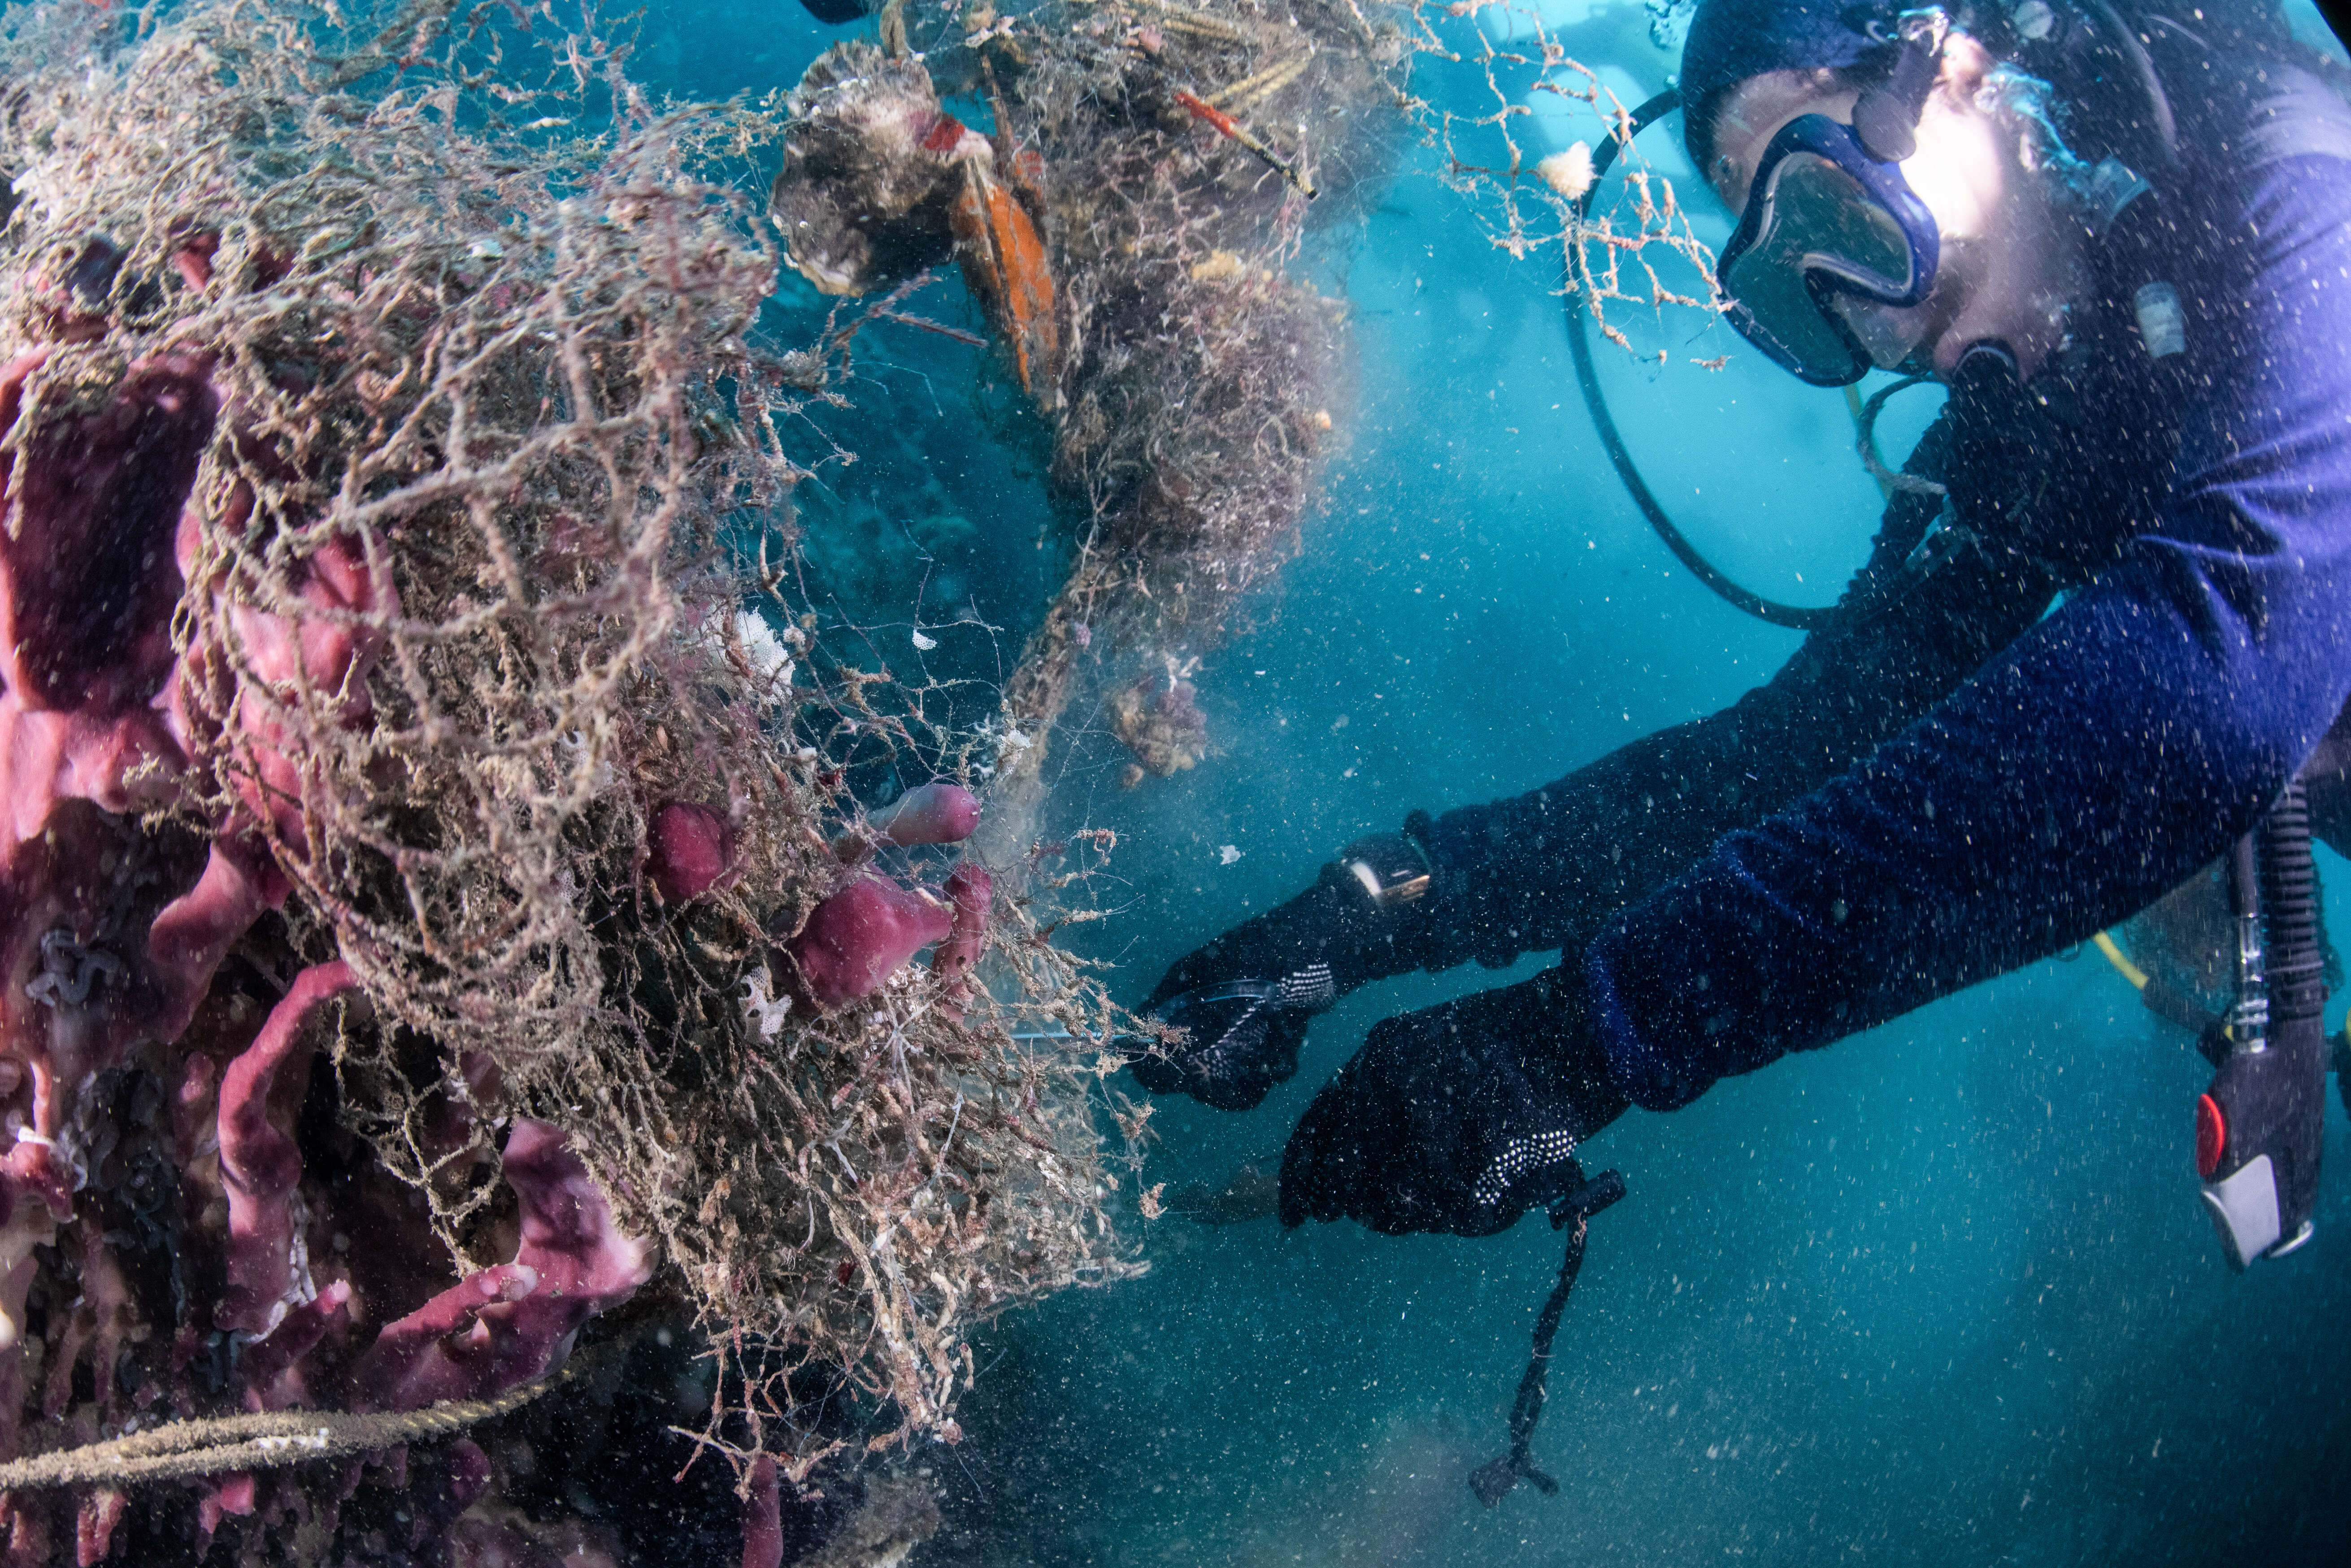 The local communities ridding our ocean of plastic